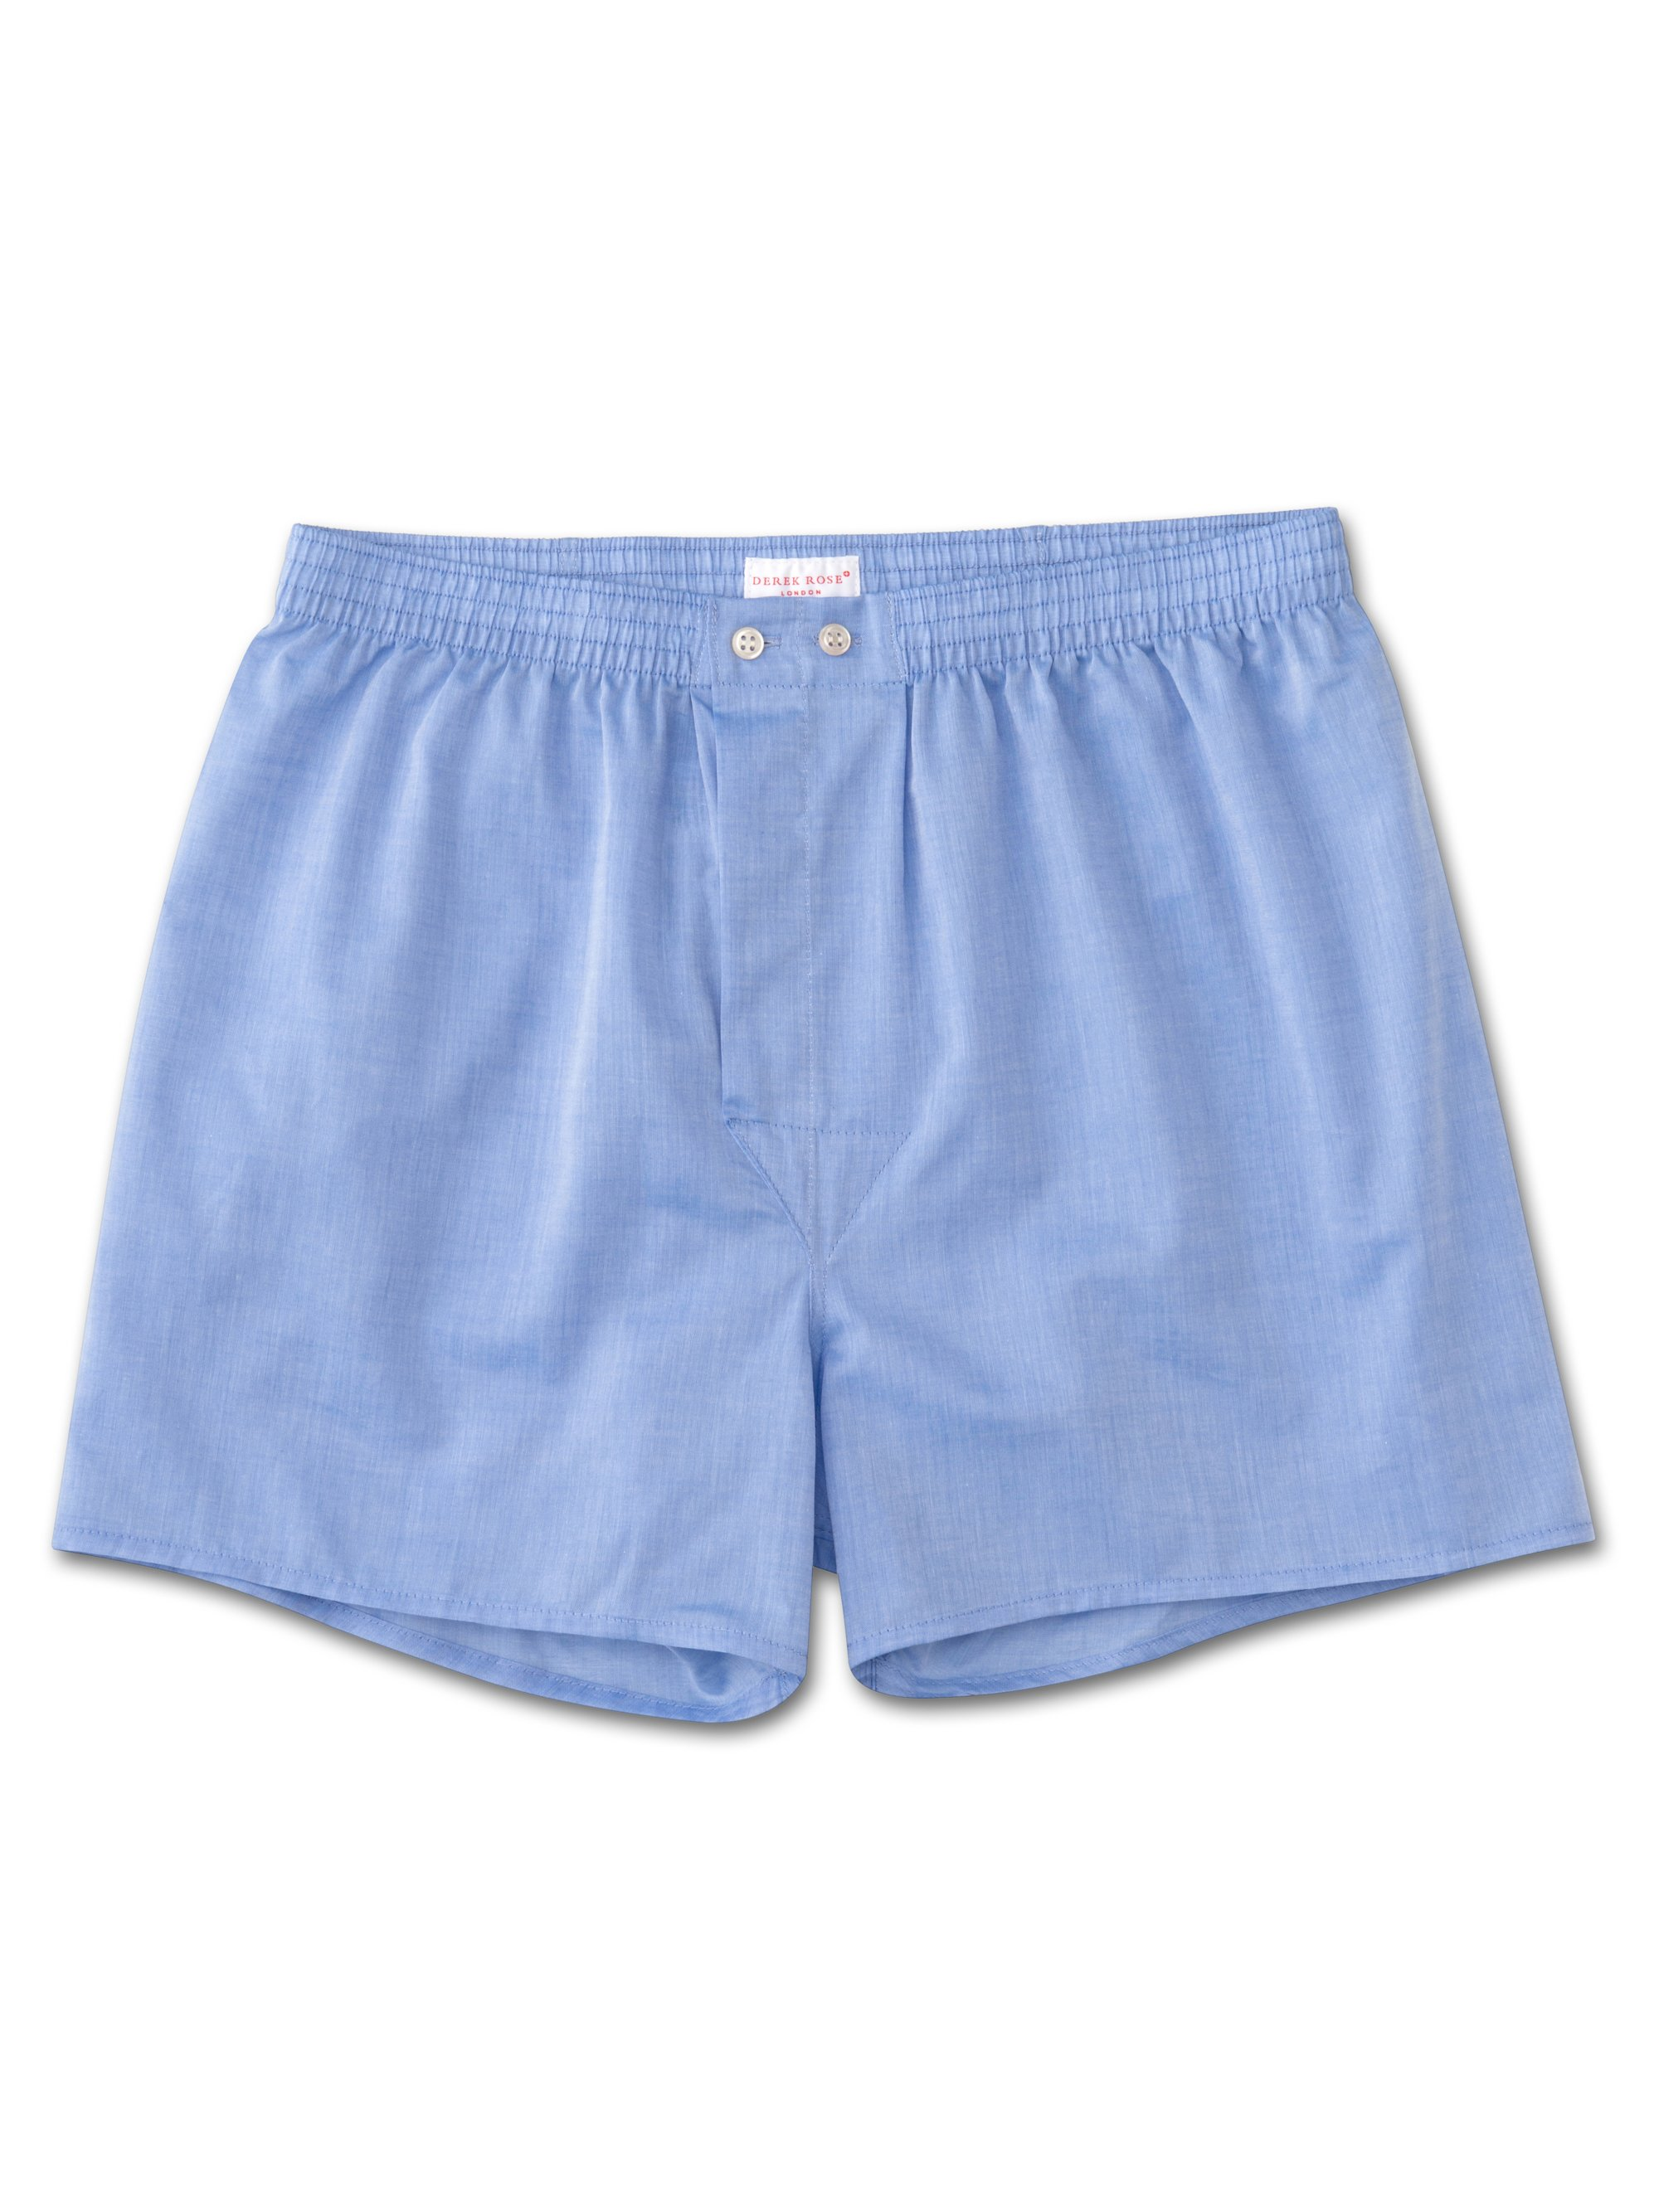 Men's Classic Fit Boxer Shorts Amalfi Cotton Batiste Blue